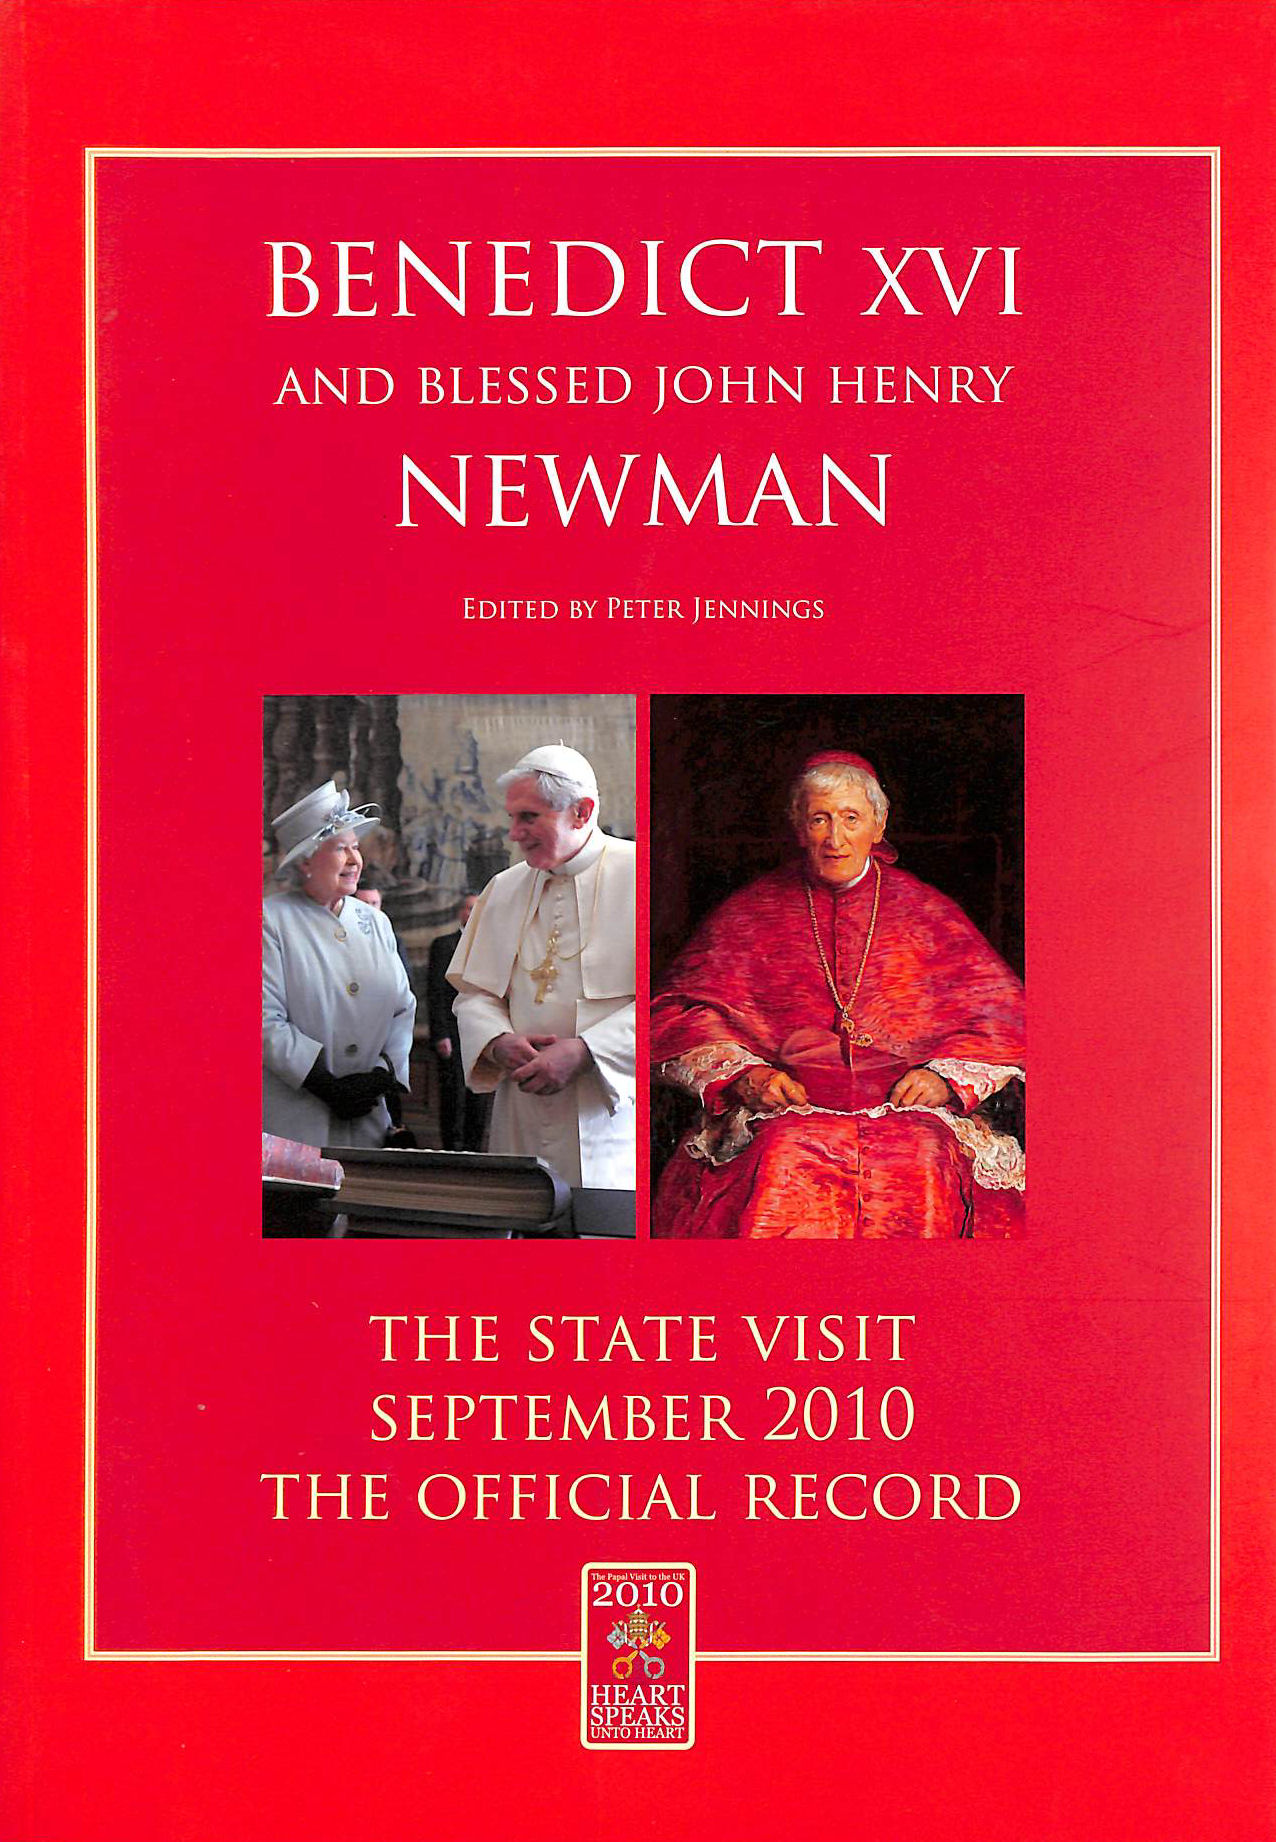 Image for Benedict Xvi And Blessed John Henry Newman: The State Visit - September 2010 - The Official Record